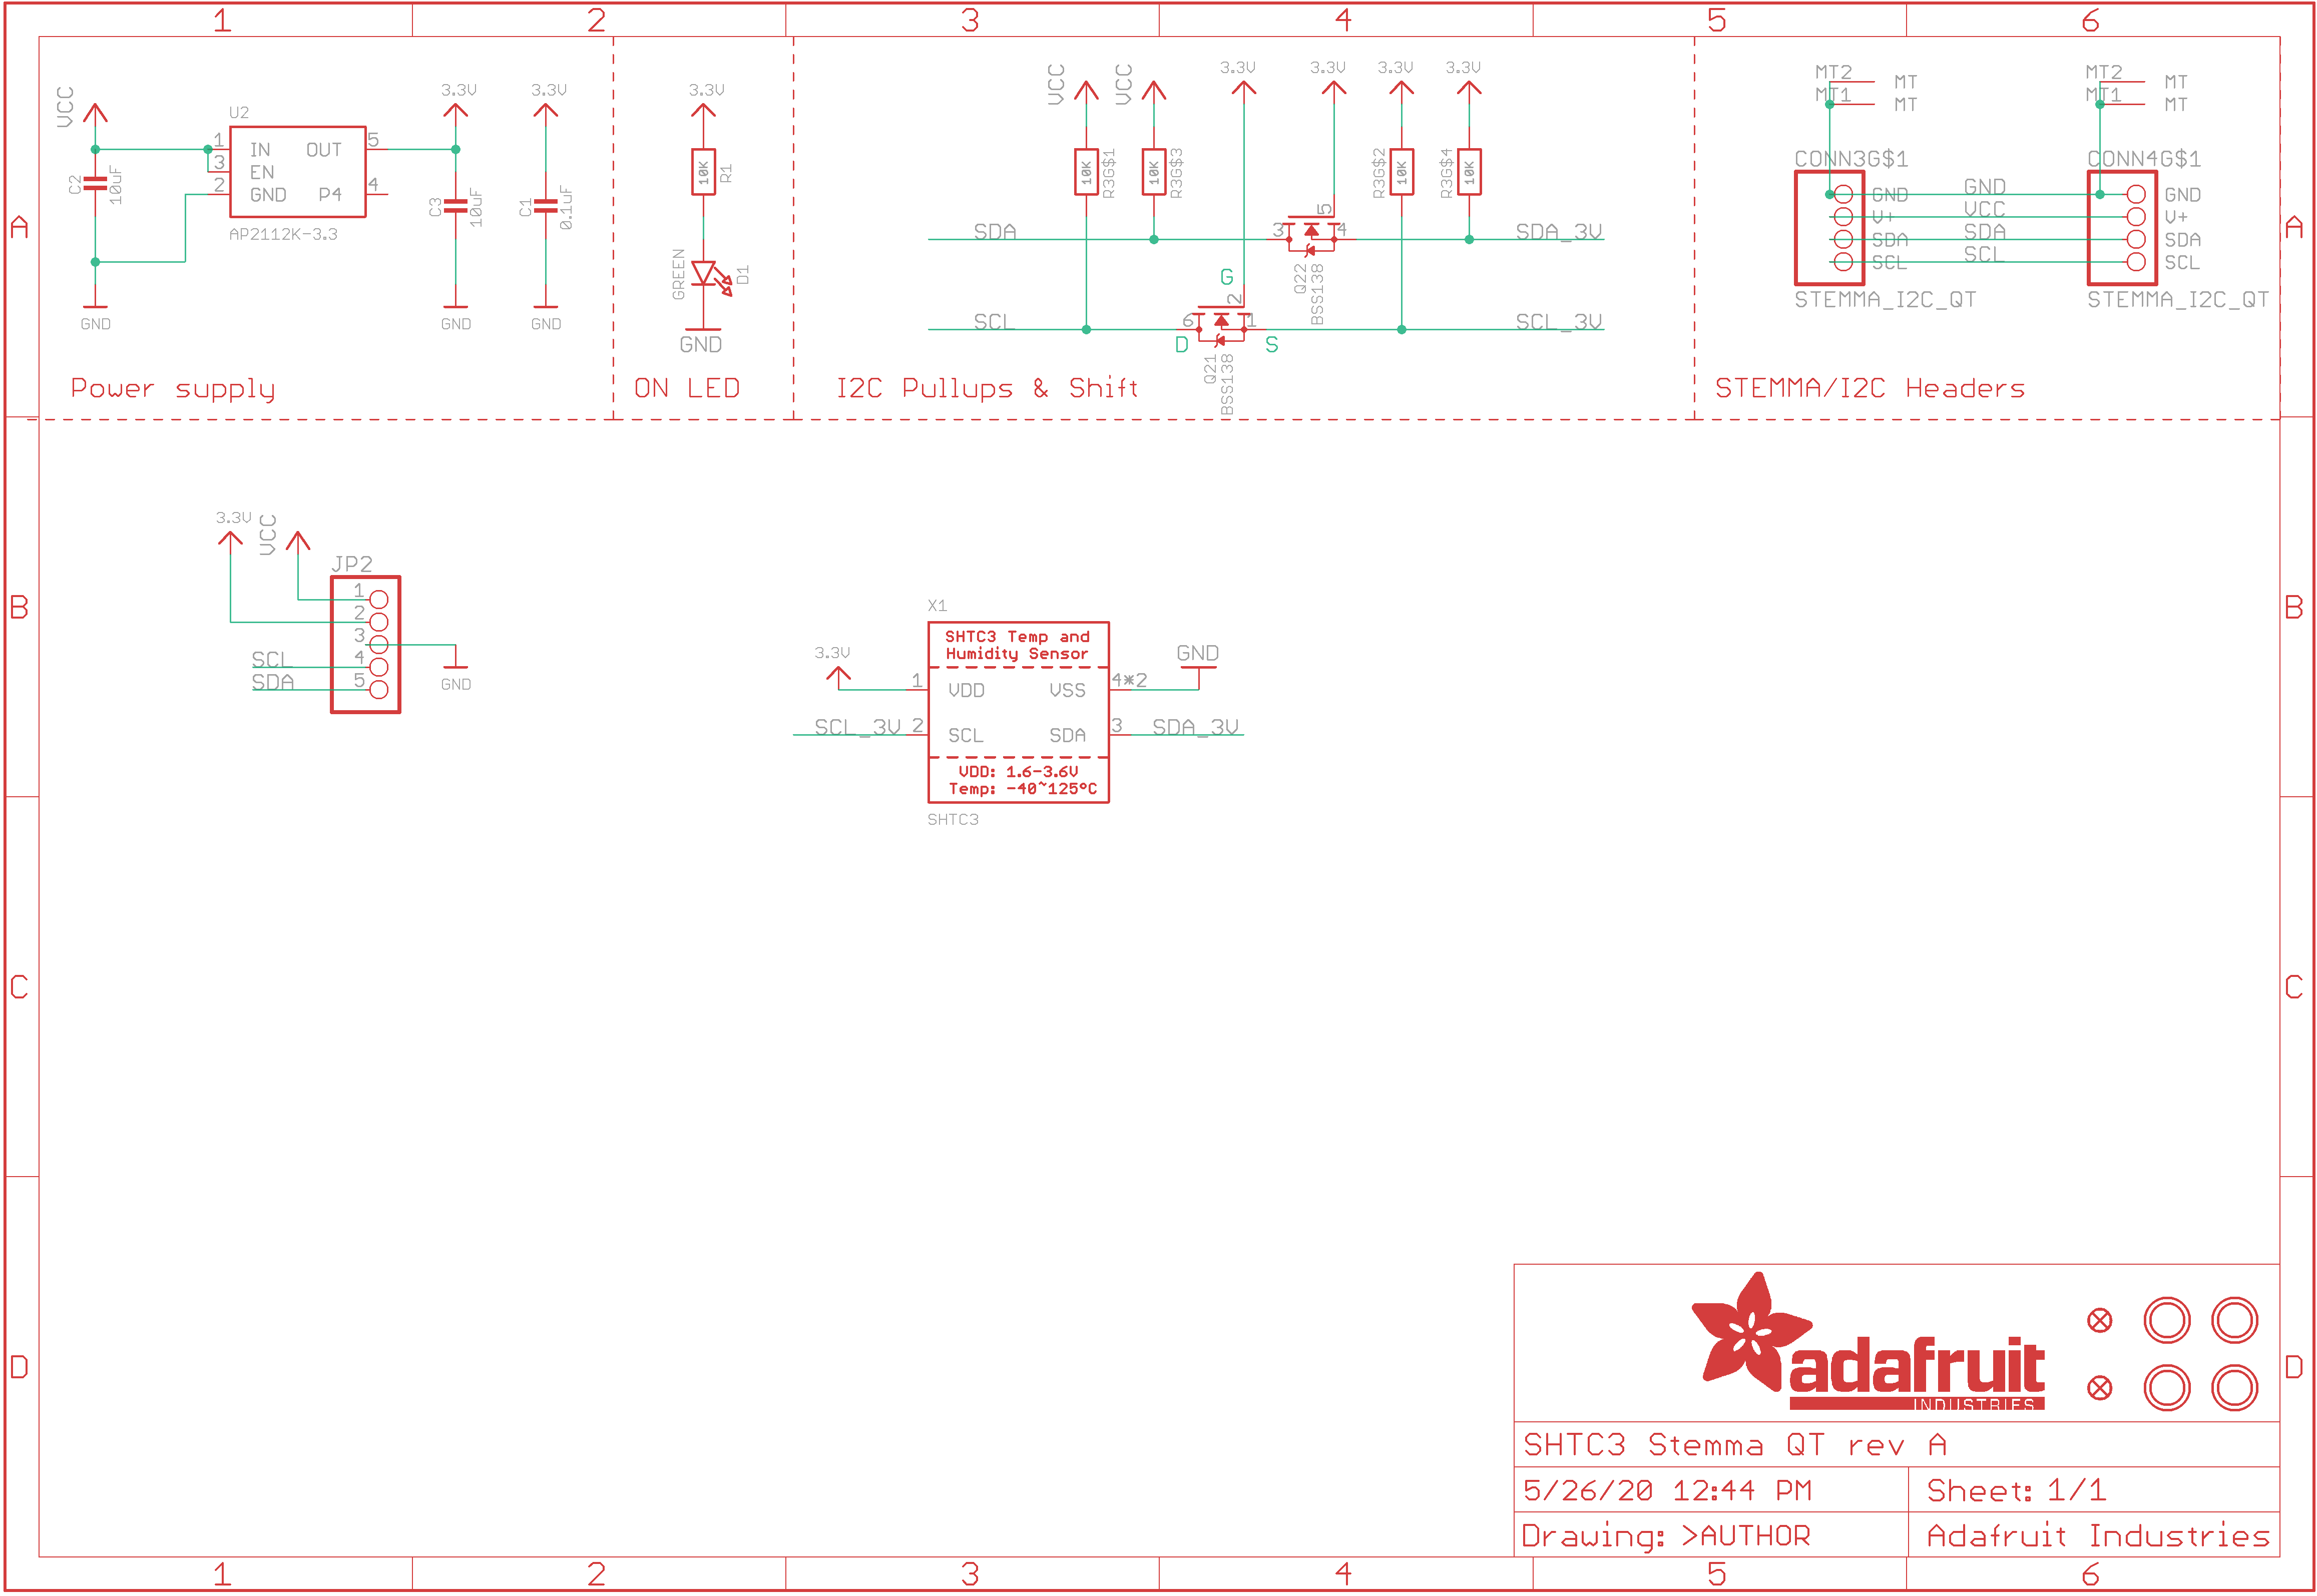 adafruit_products_x_downloads_a_schematic.png